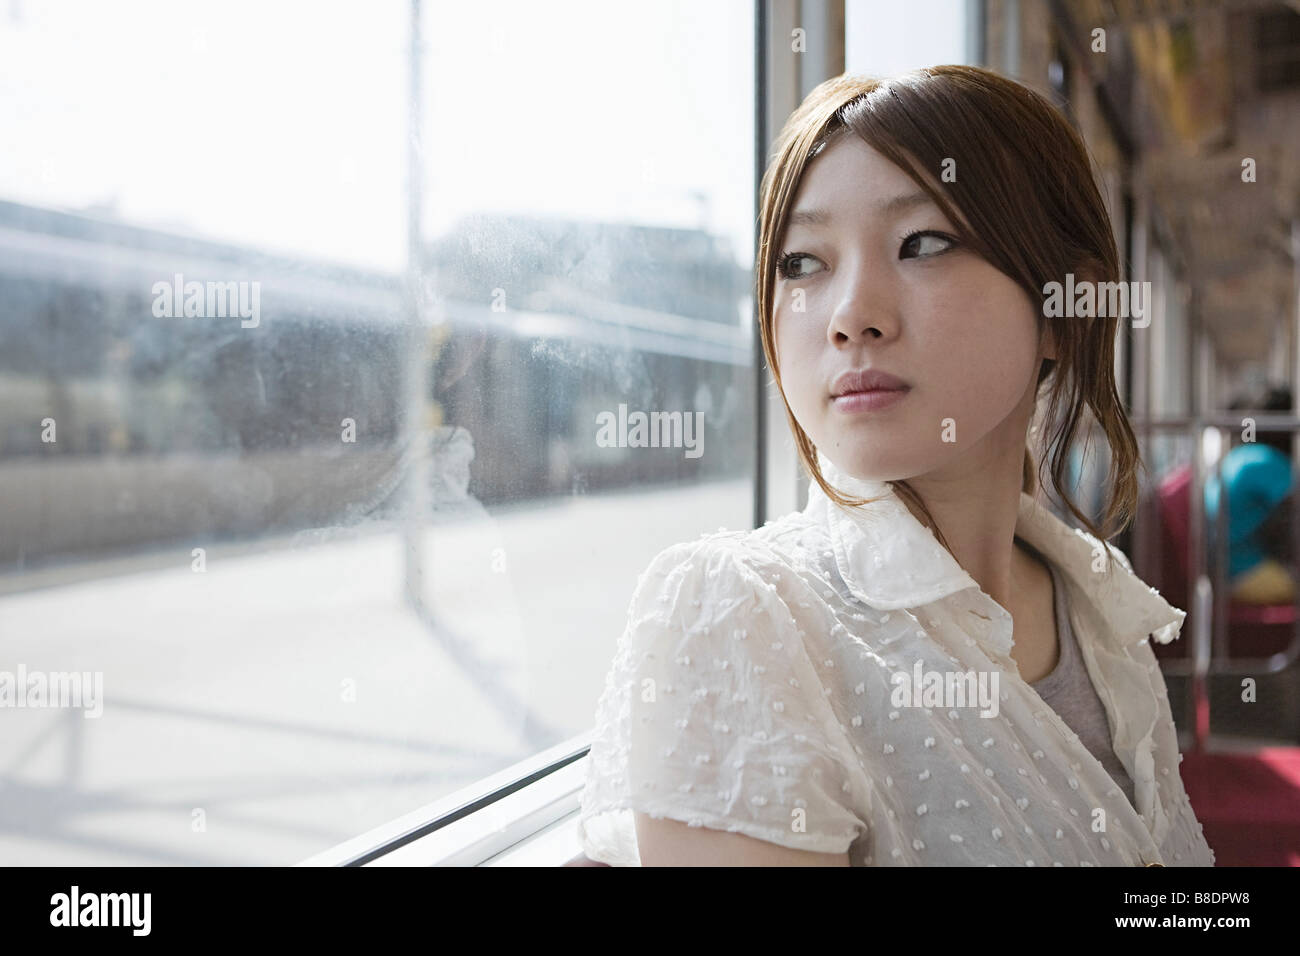 Young woman on train - Stock Image